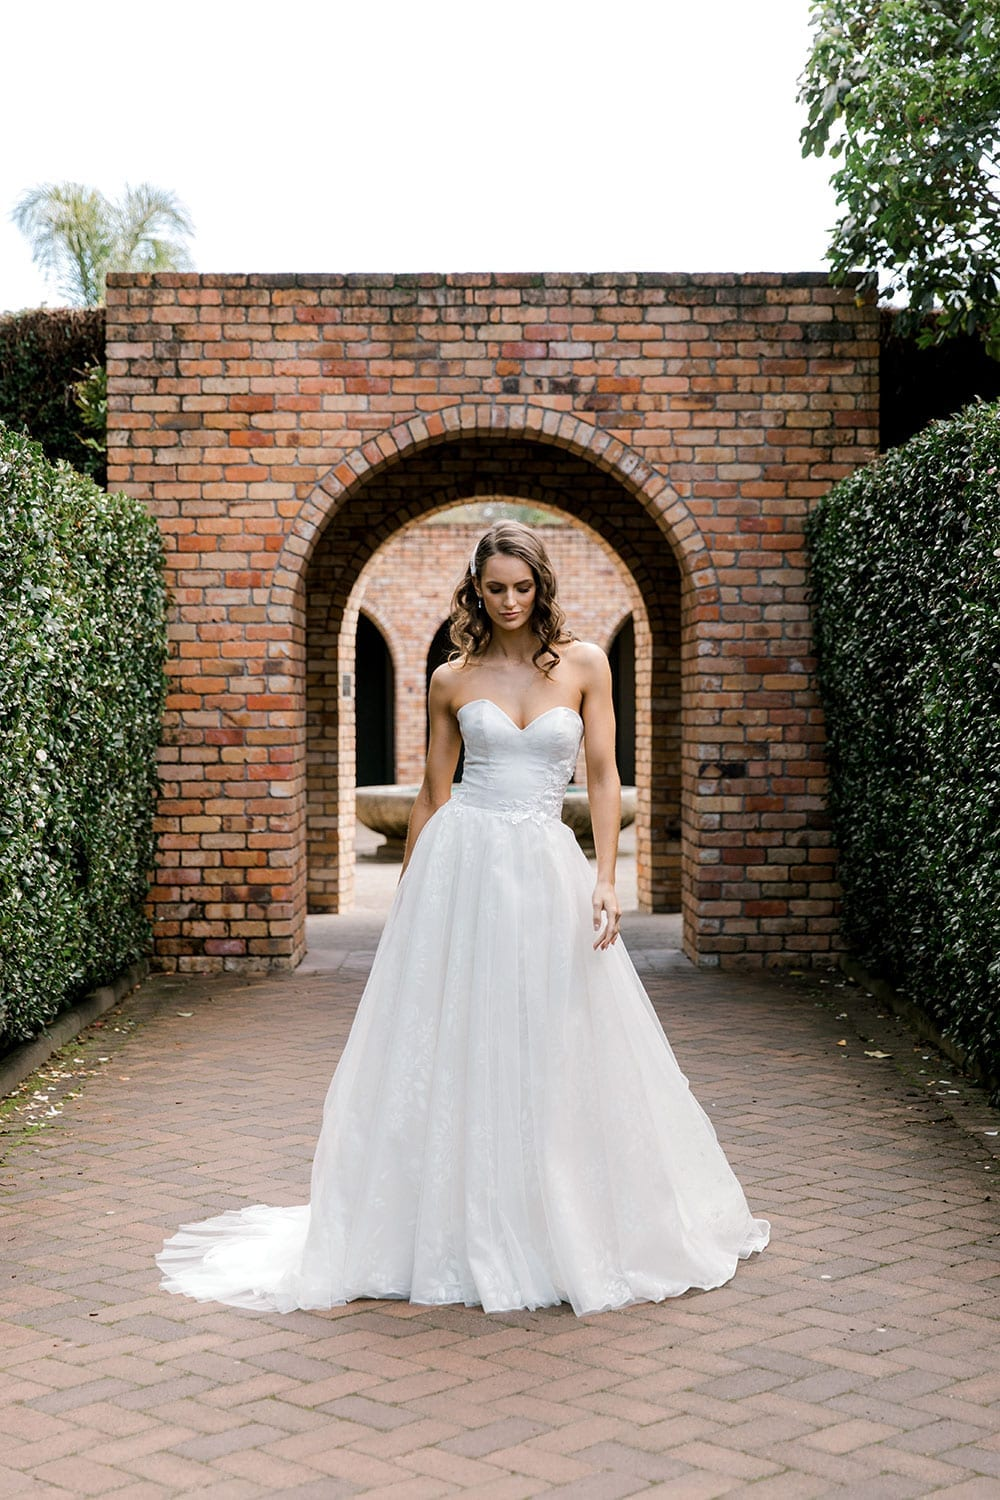 Model wearing Vinka Design Jasmine Wedding Dress, a Strapless Classic Wedding Gown in front of a garden brick arch